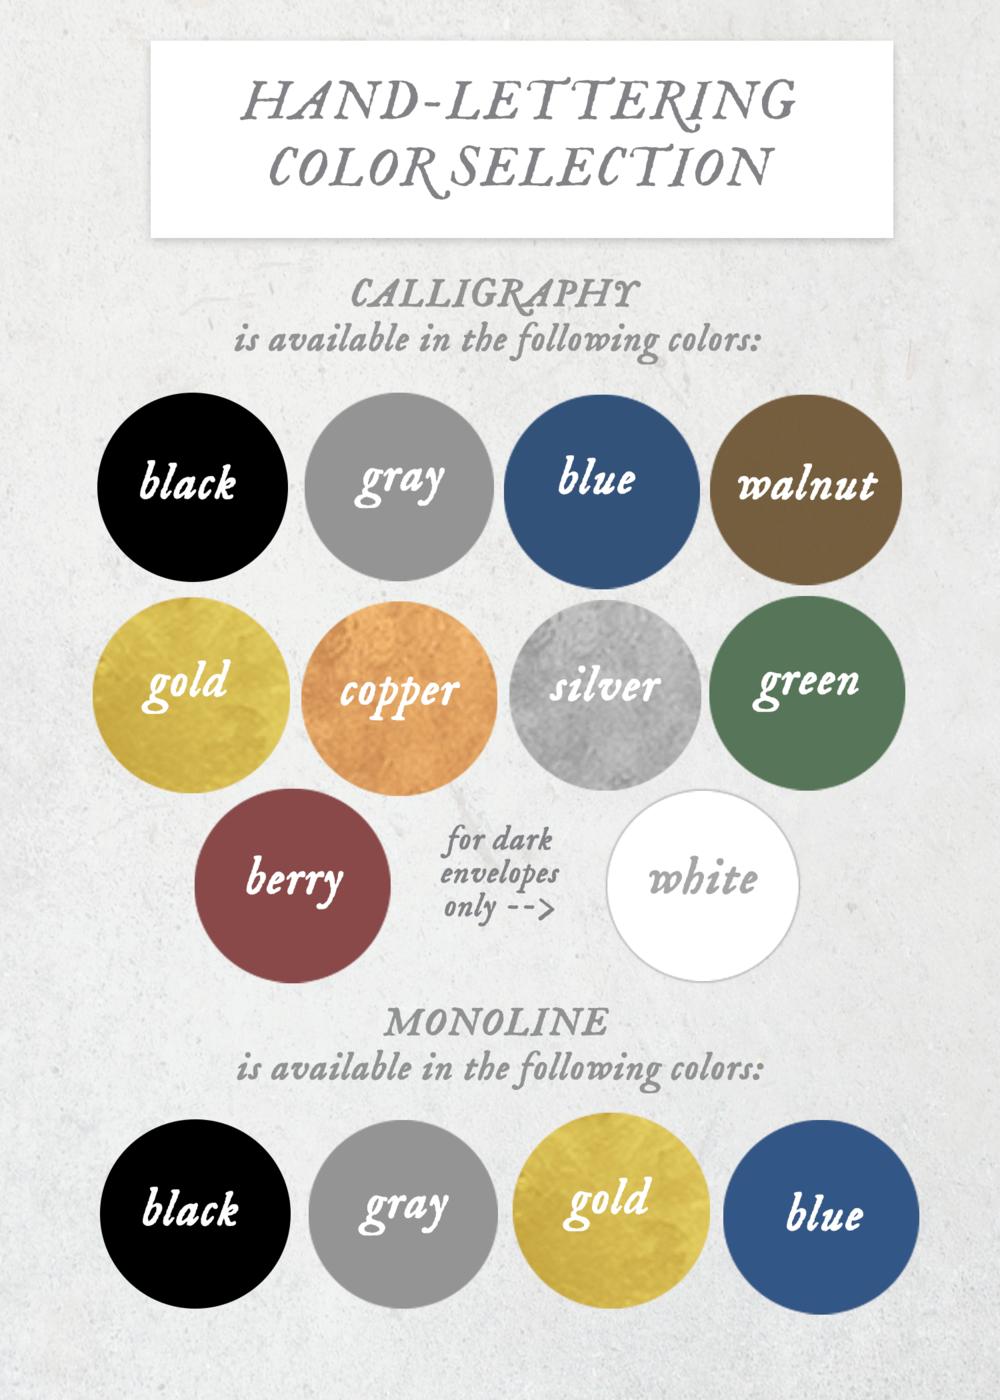 Hand-lettering-color-selection.png